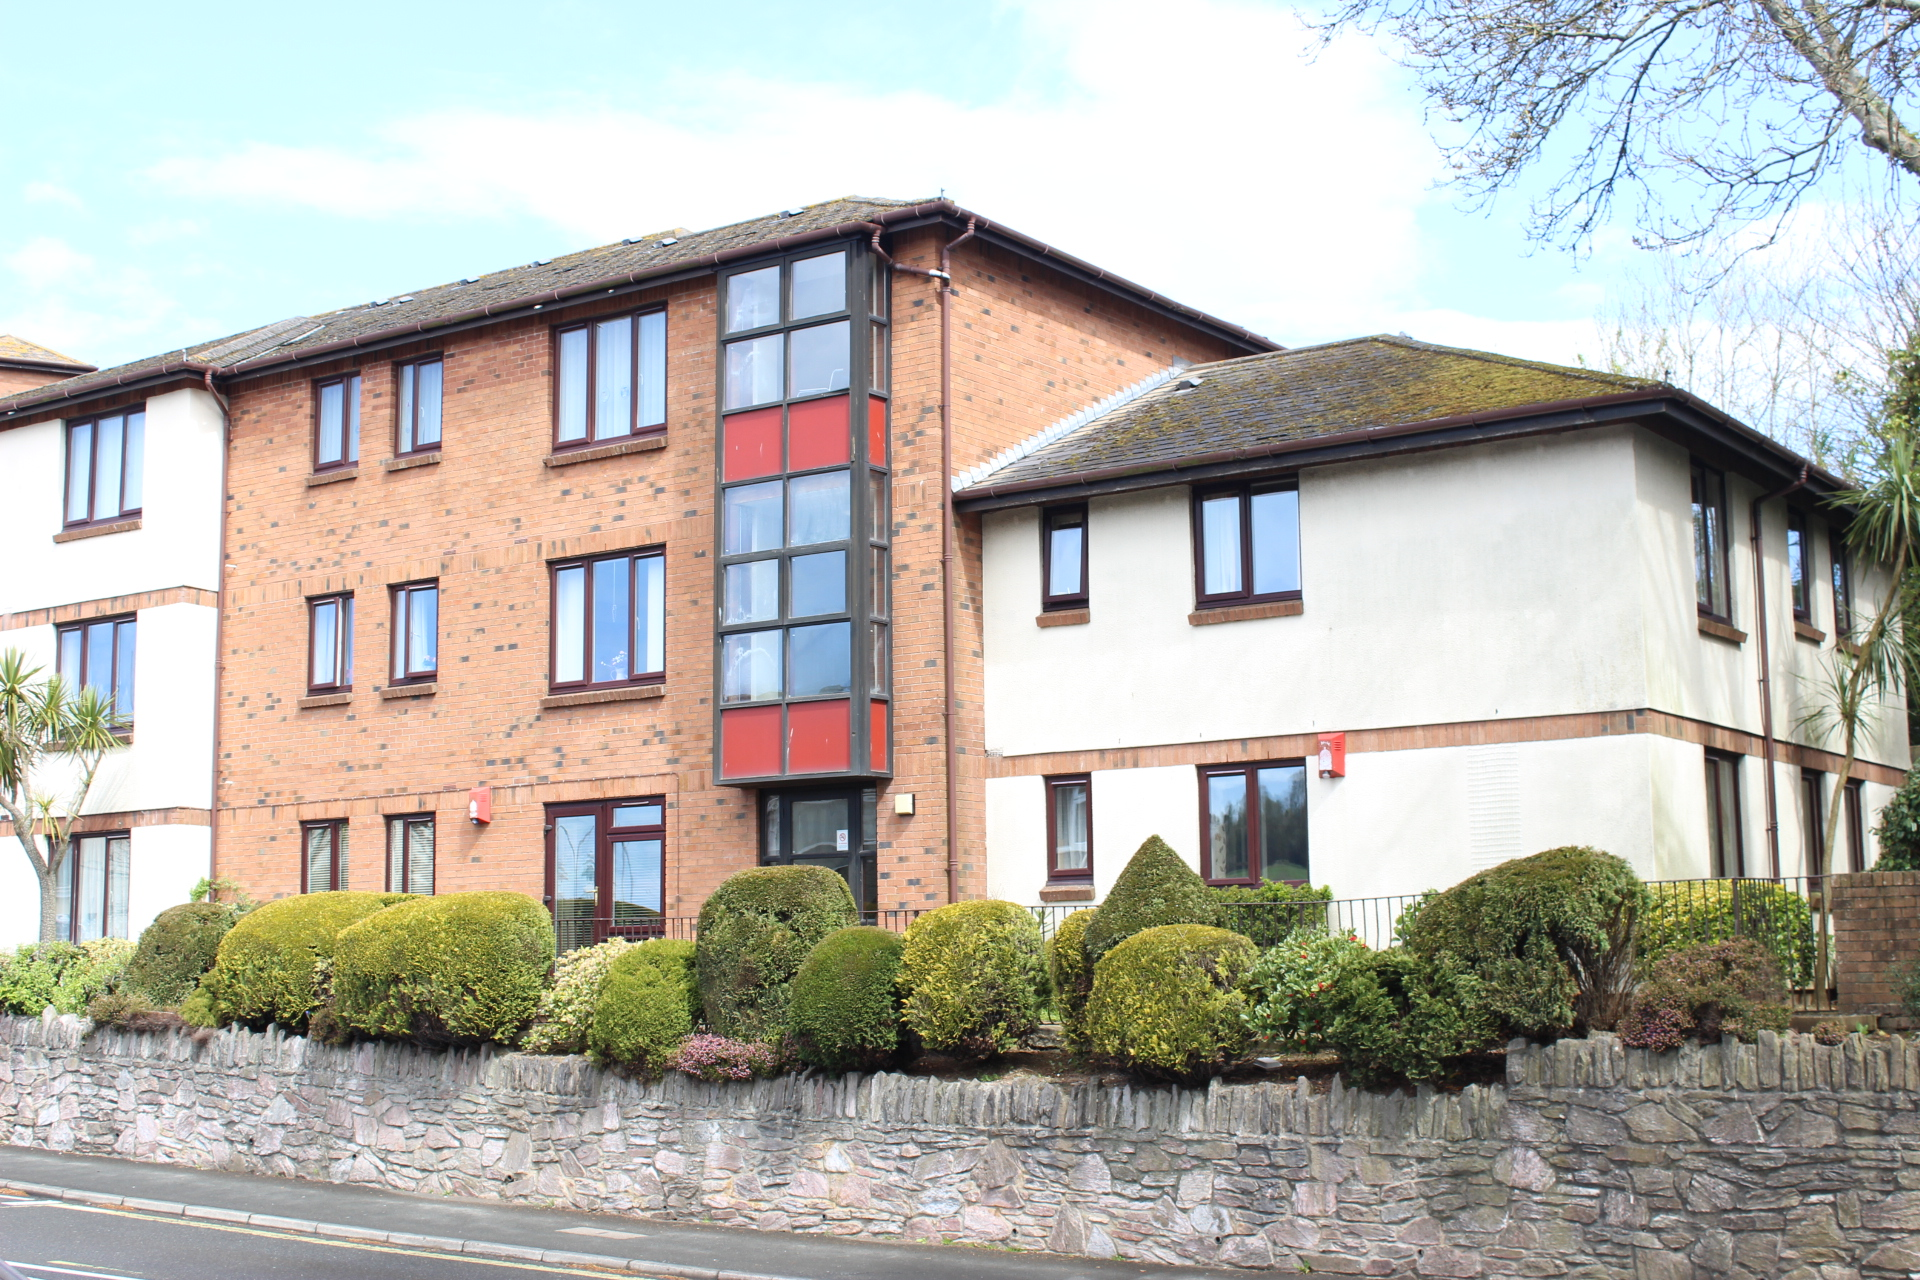 2 Bedroom Flat For Sale Mudge Way Plympton Plymouth Pl Pl7 2ps